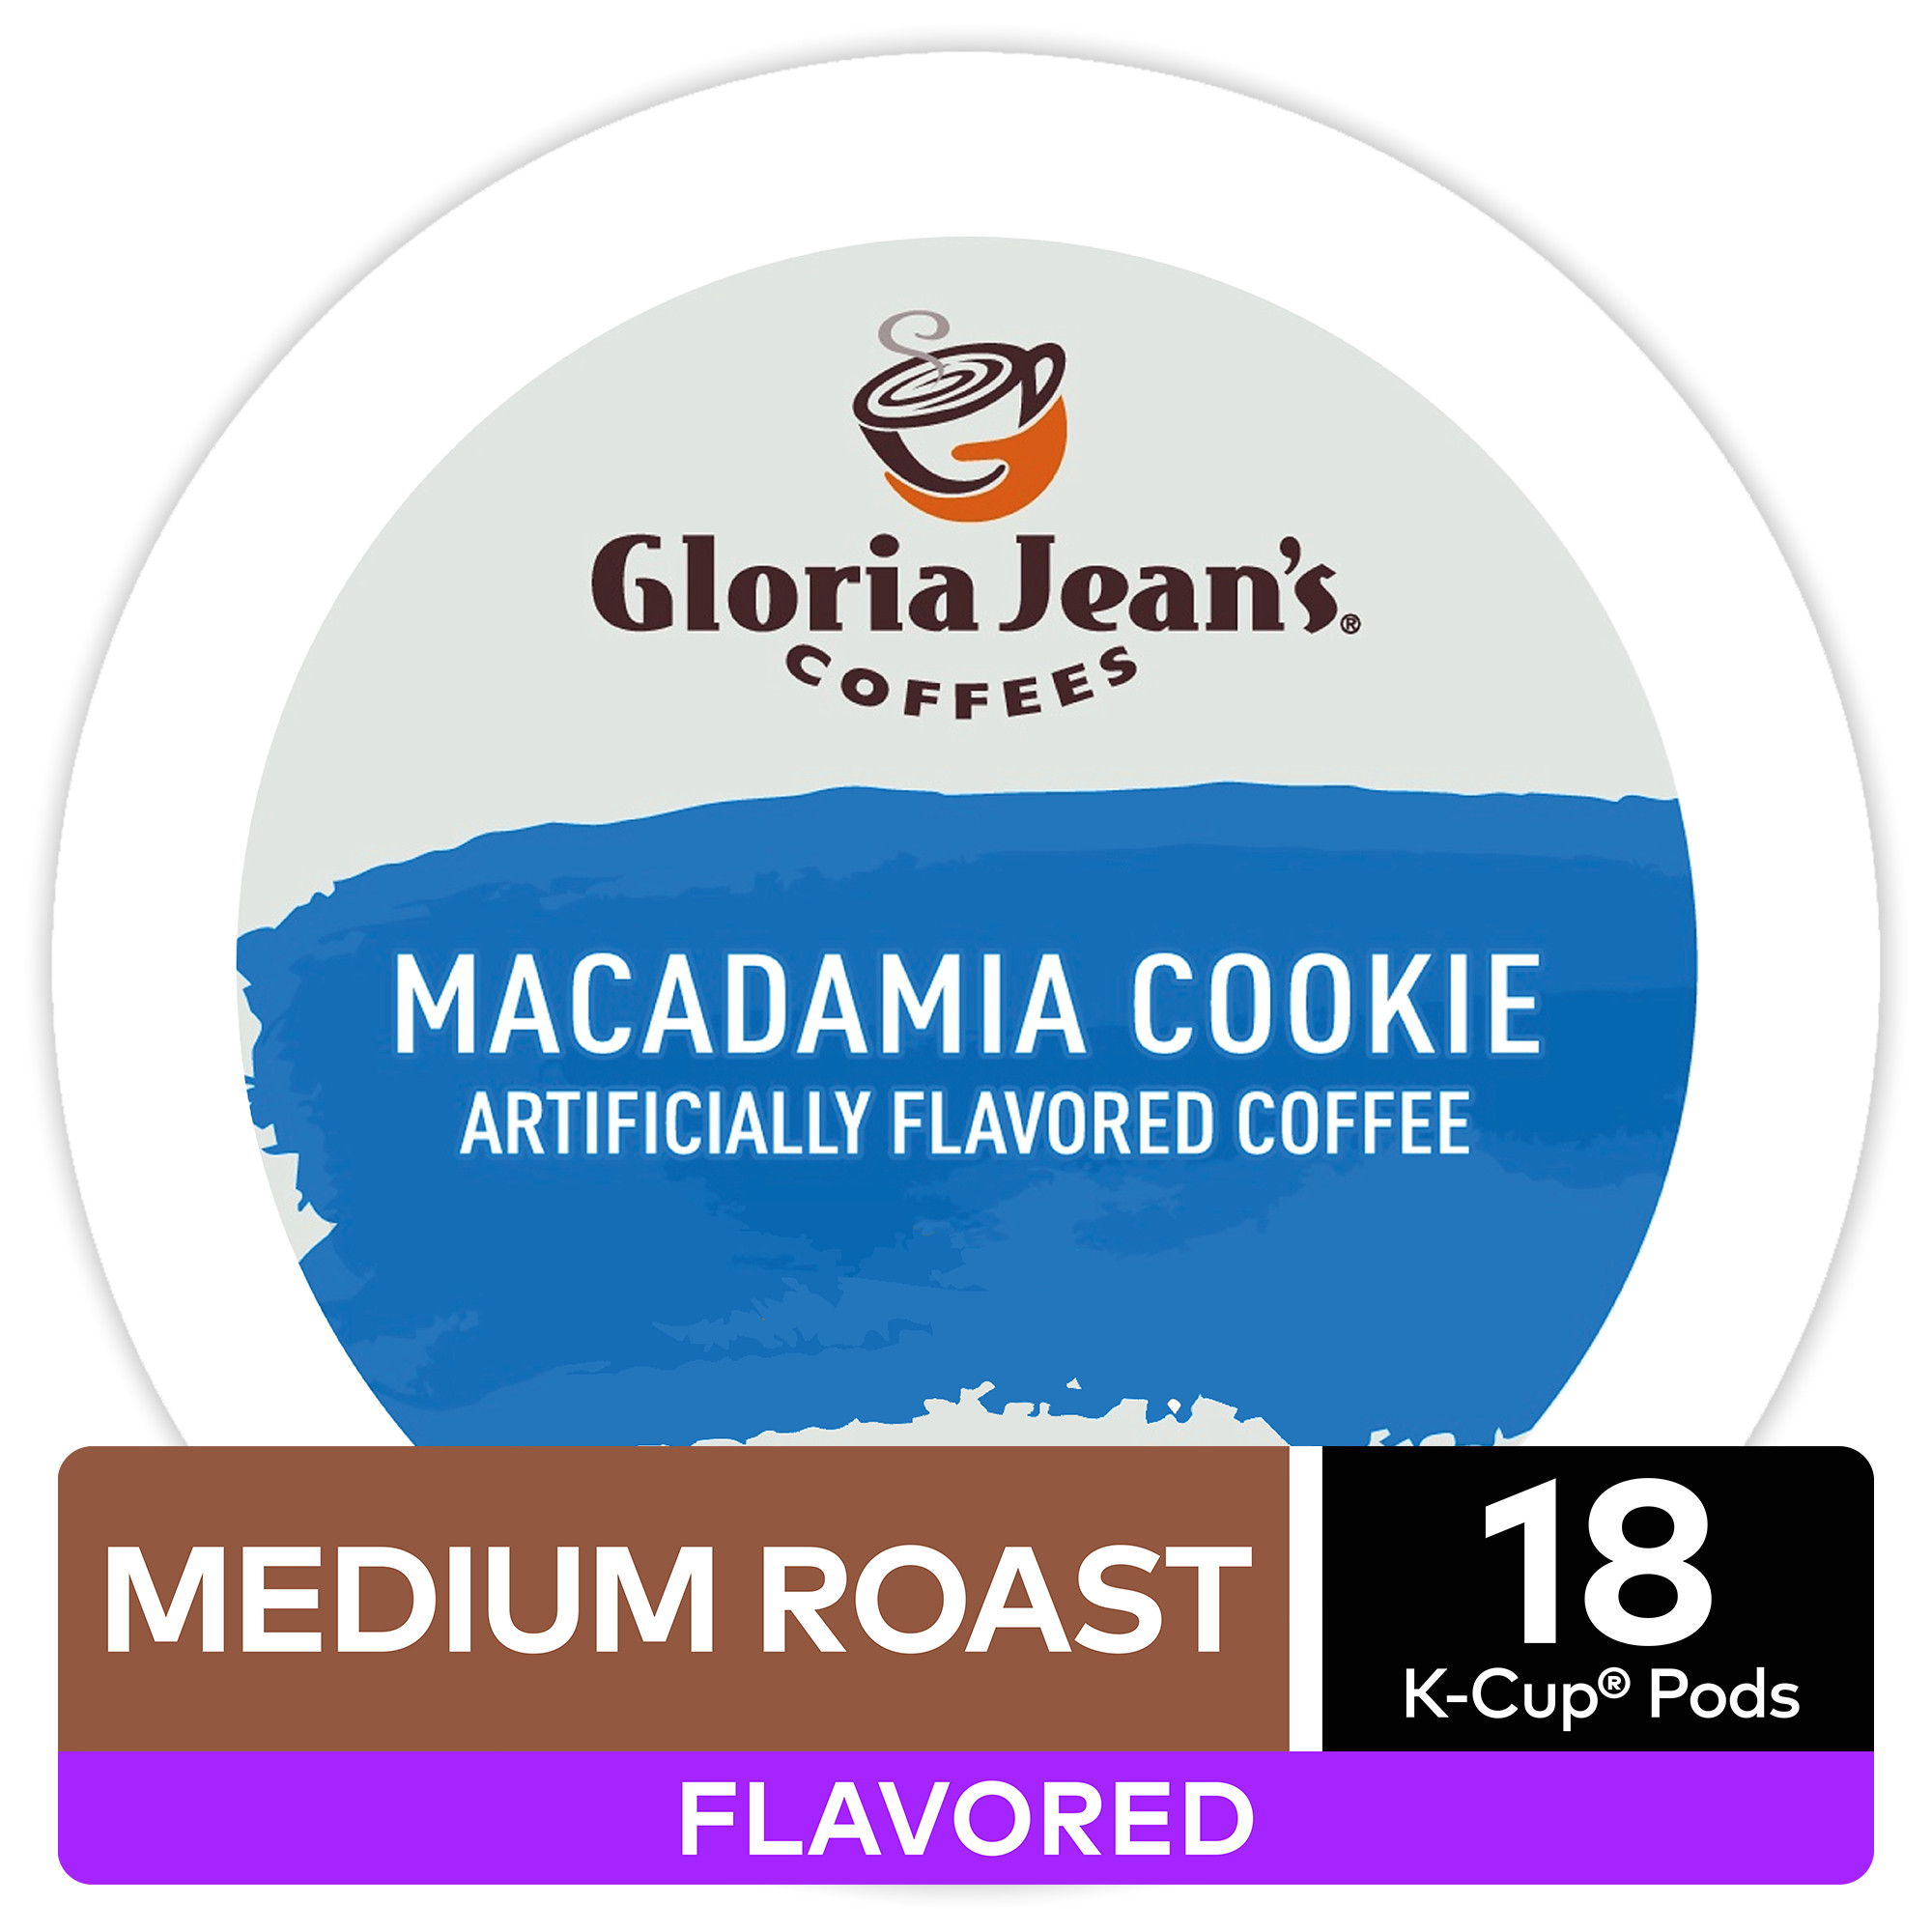 gloria jeans coffees macadamia cookie flavored coffee keurig k cup pods medium roast 18 count walmart com